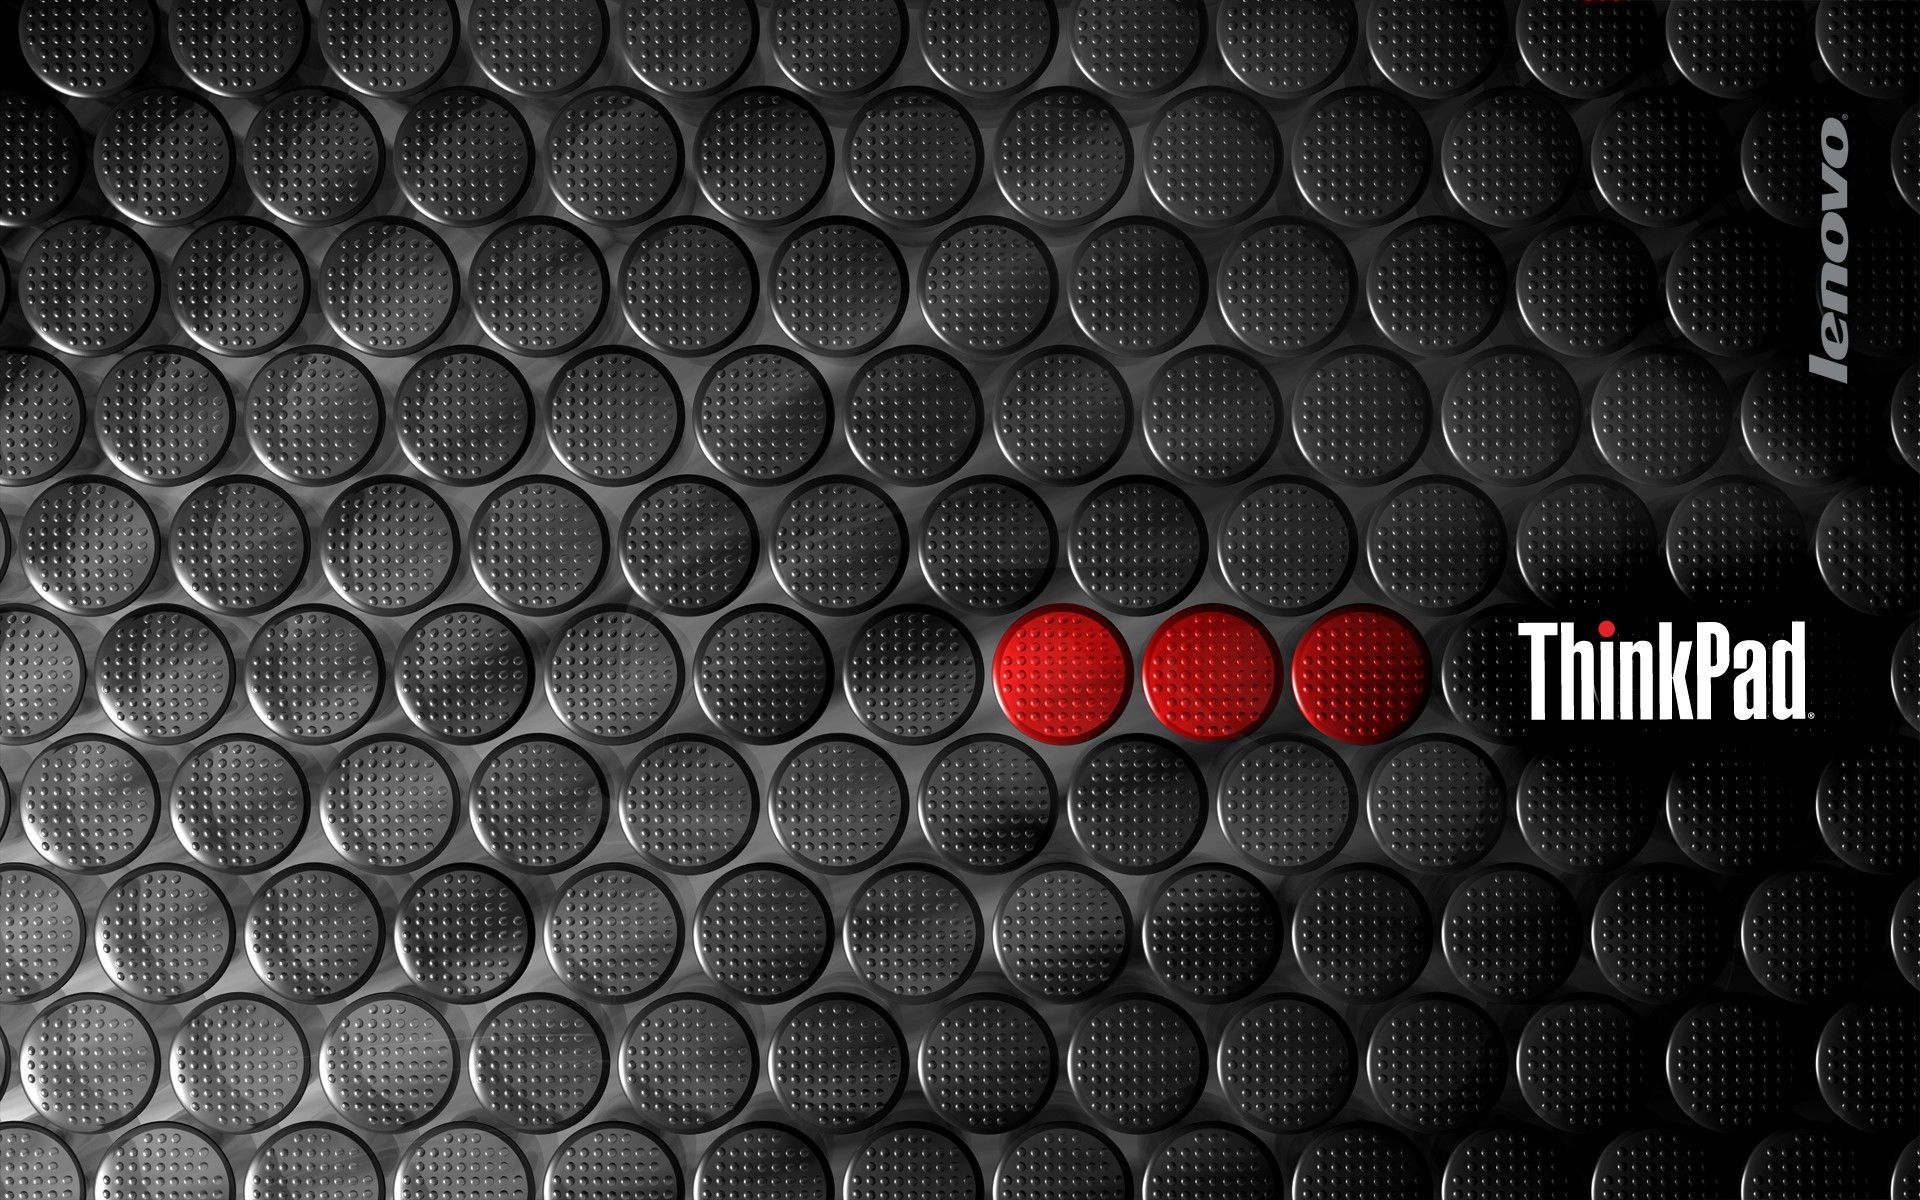 Thinkpad Wallpaper